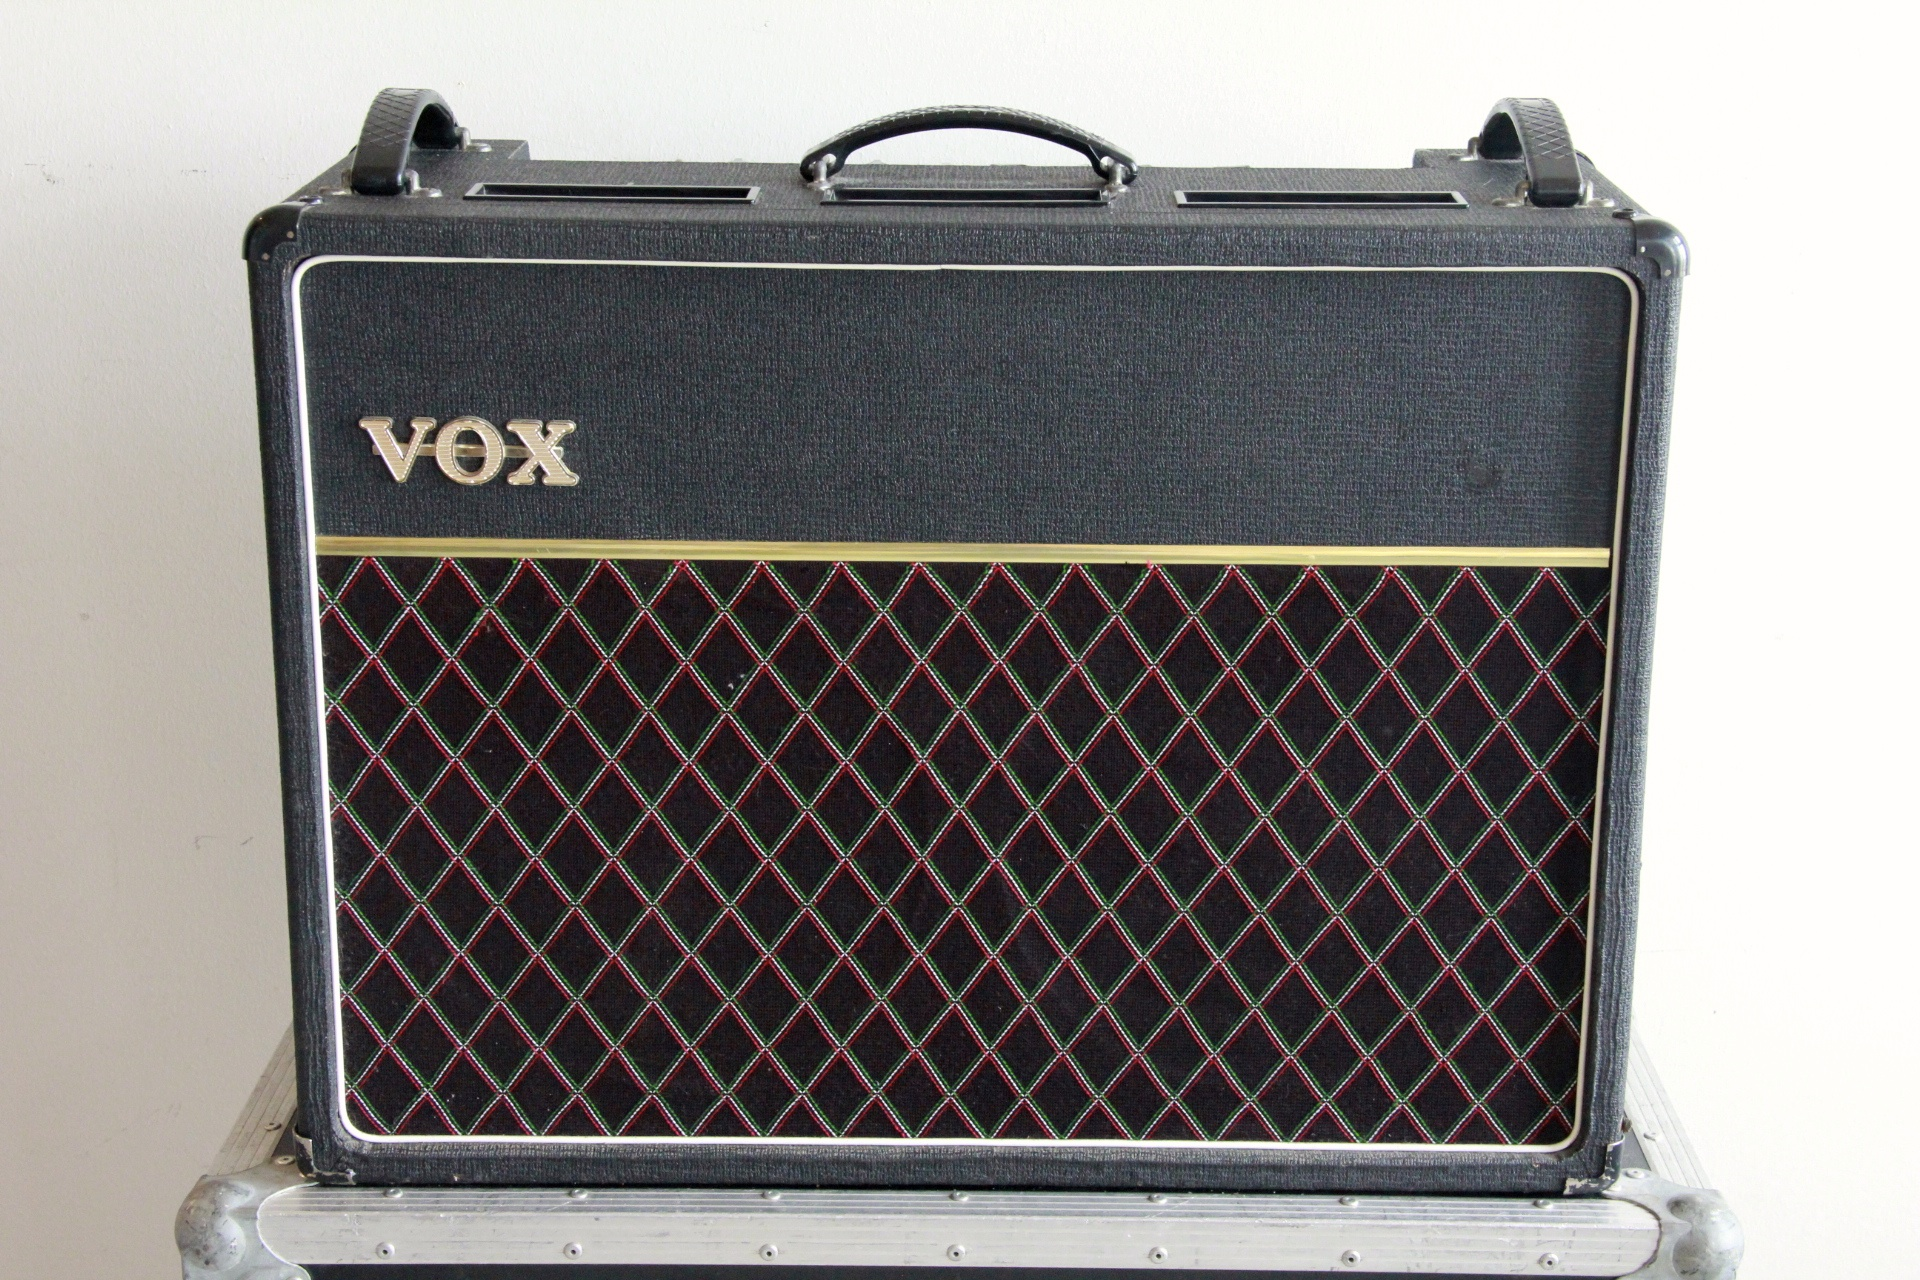 Vox AC30 1970 Amp For Sale